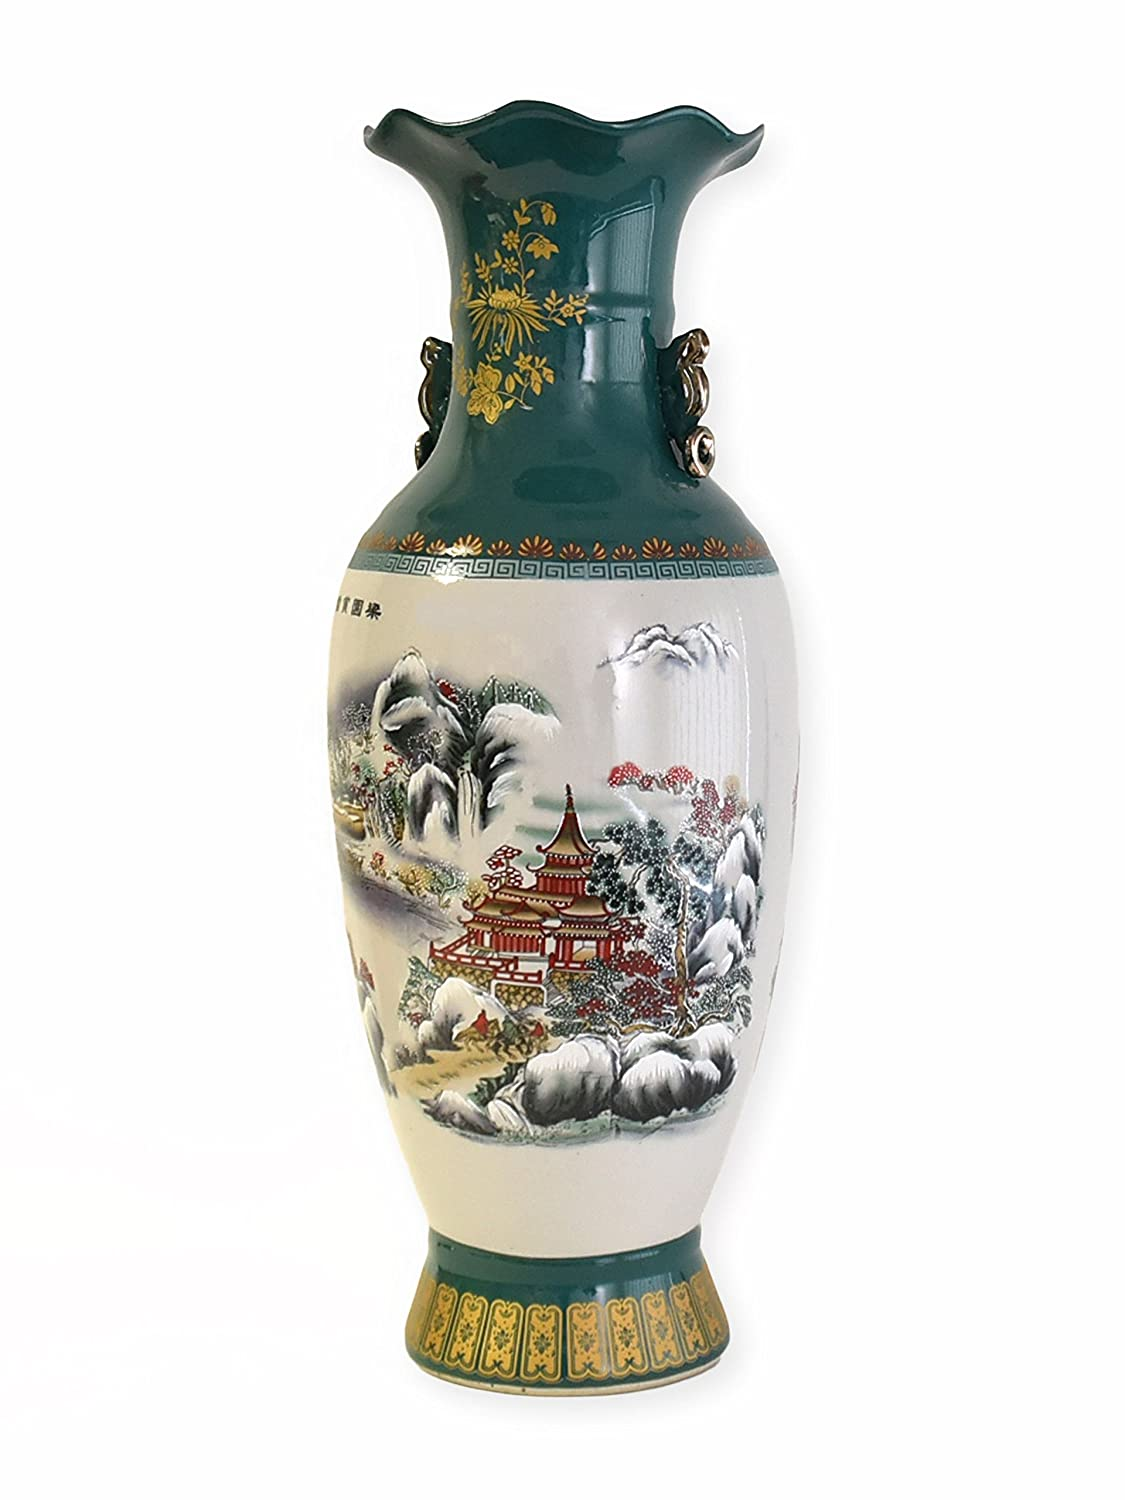 Great chinese vase vintage bodenvase xl porcelain with landscape great chinese vase vintage bodenvase xl porcelain with landscape motive teehaus green amazon kitchen home reviewsmspy